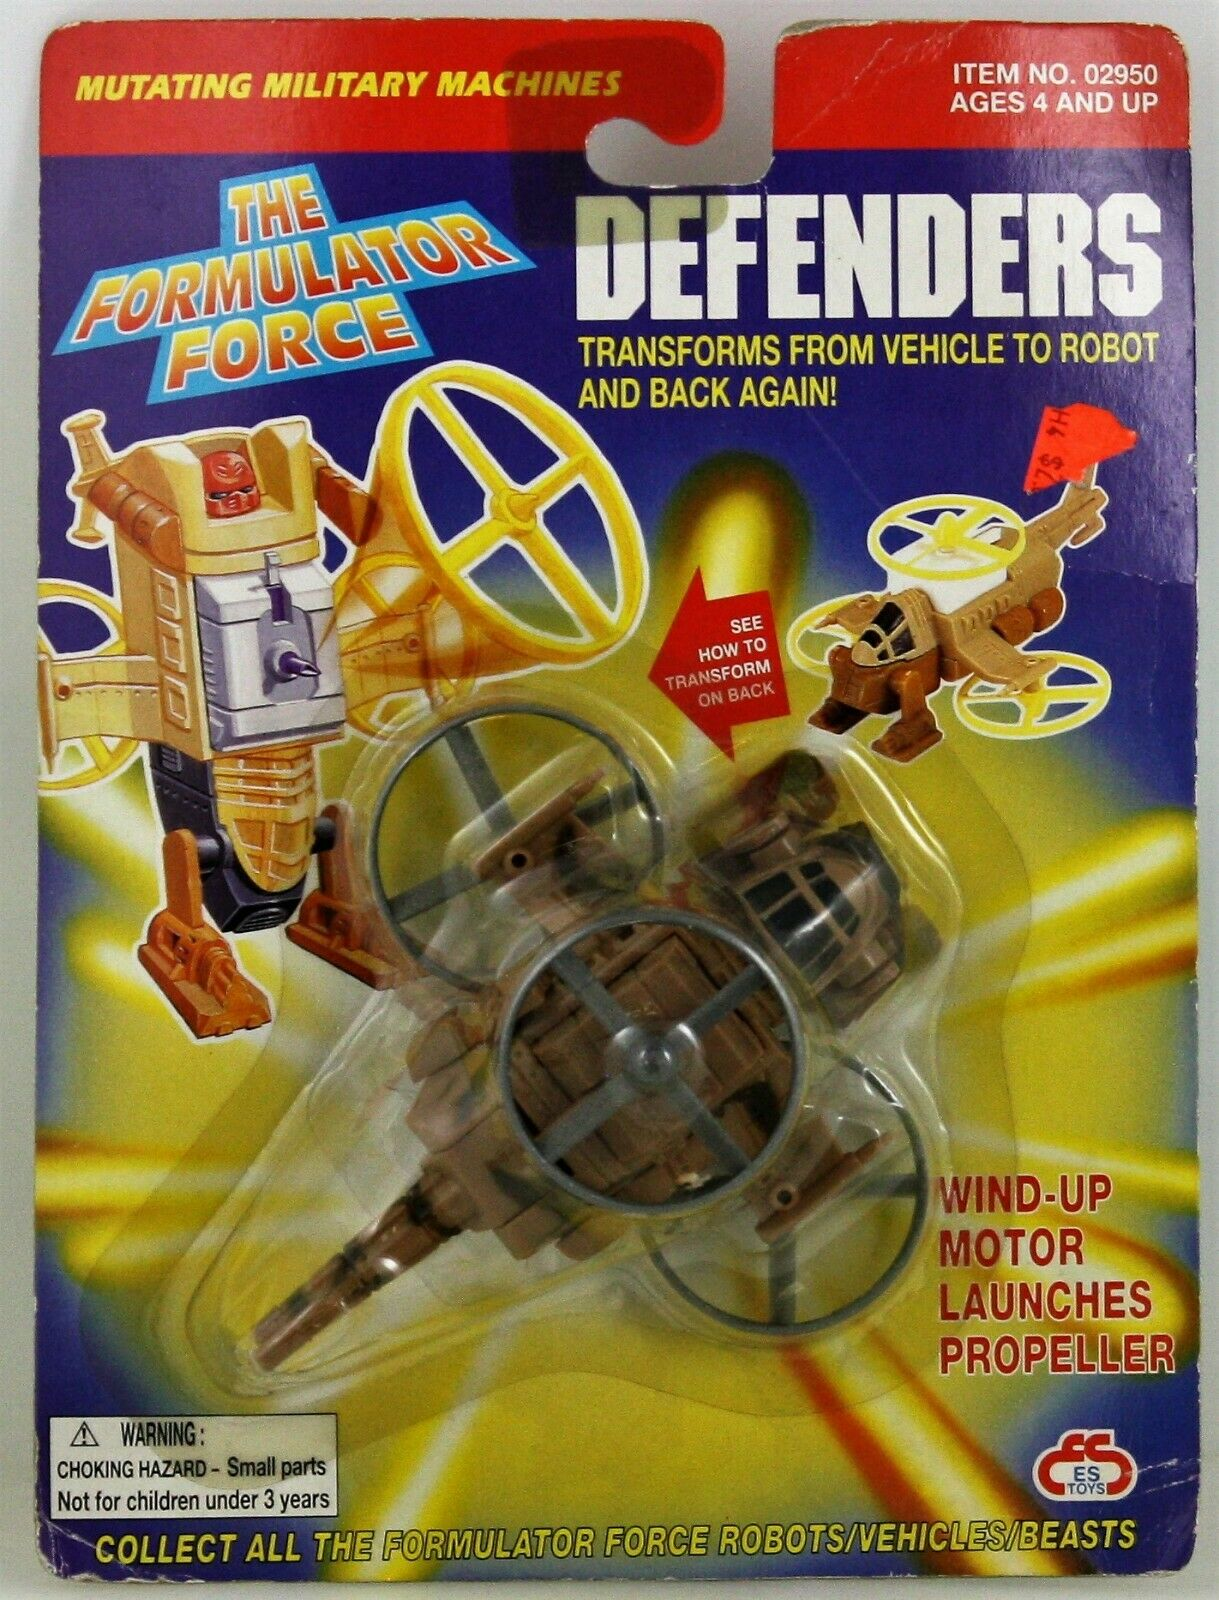 THE FORMULATOR FORCE DEFENDERS TRANSFORMS FROM VEHICLE TO ROBOT ESTOYS